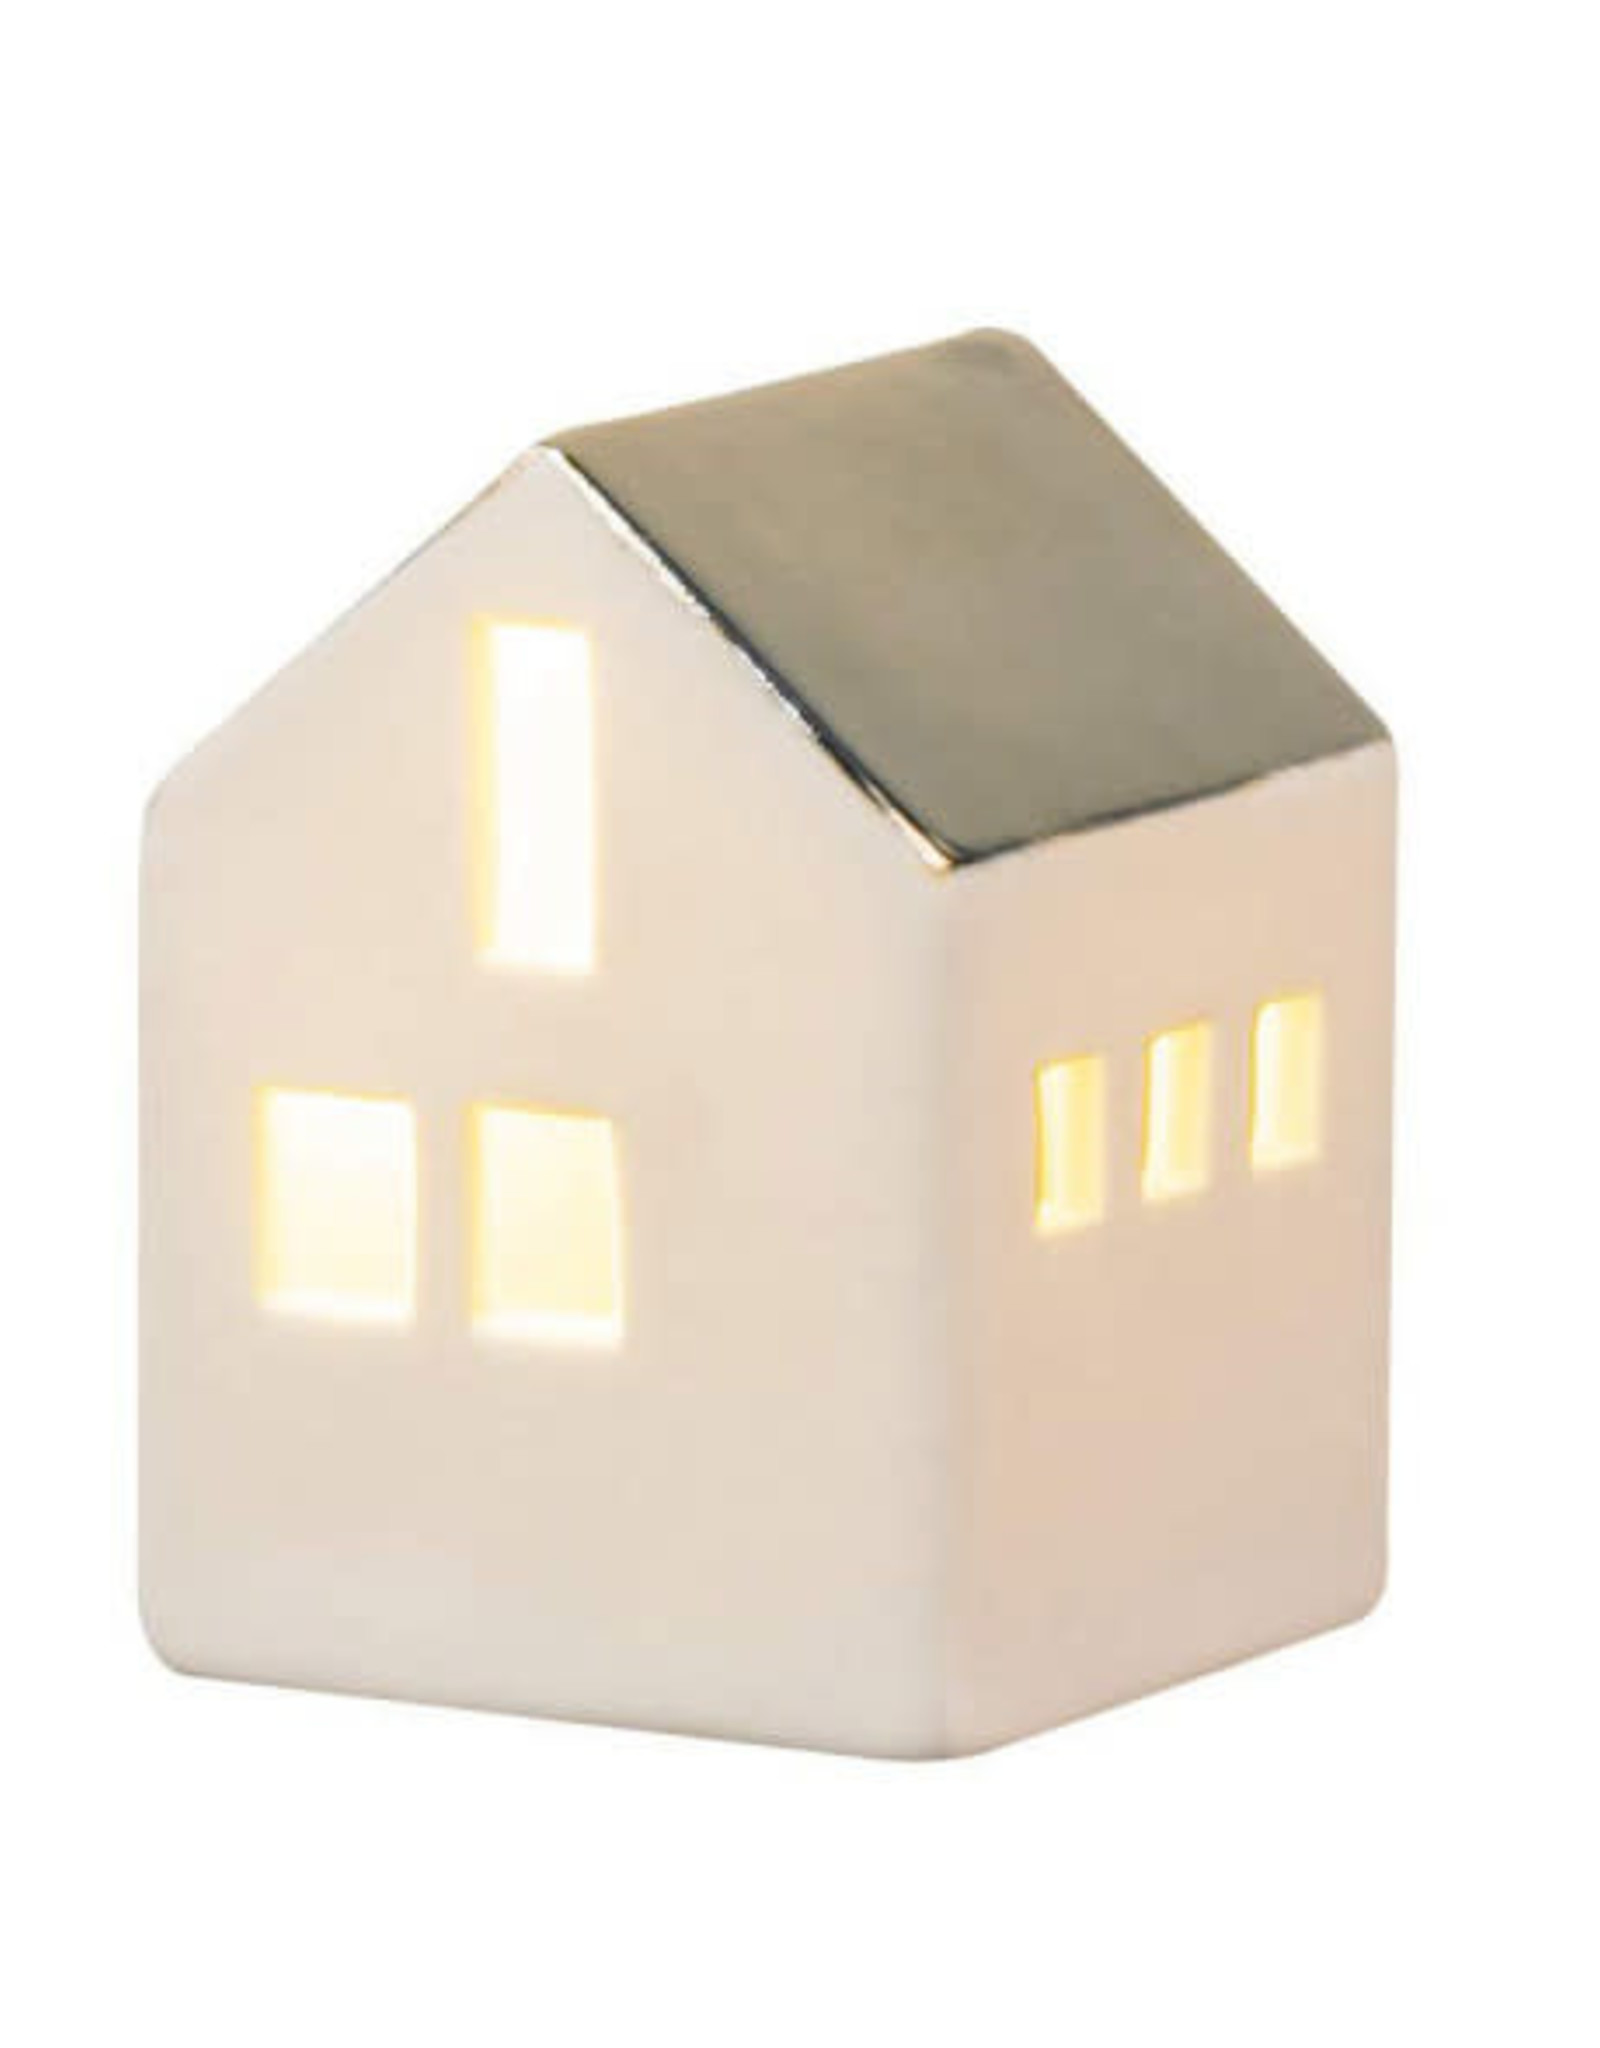 Rader Mini Light House Large 7cm